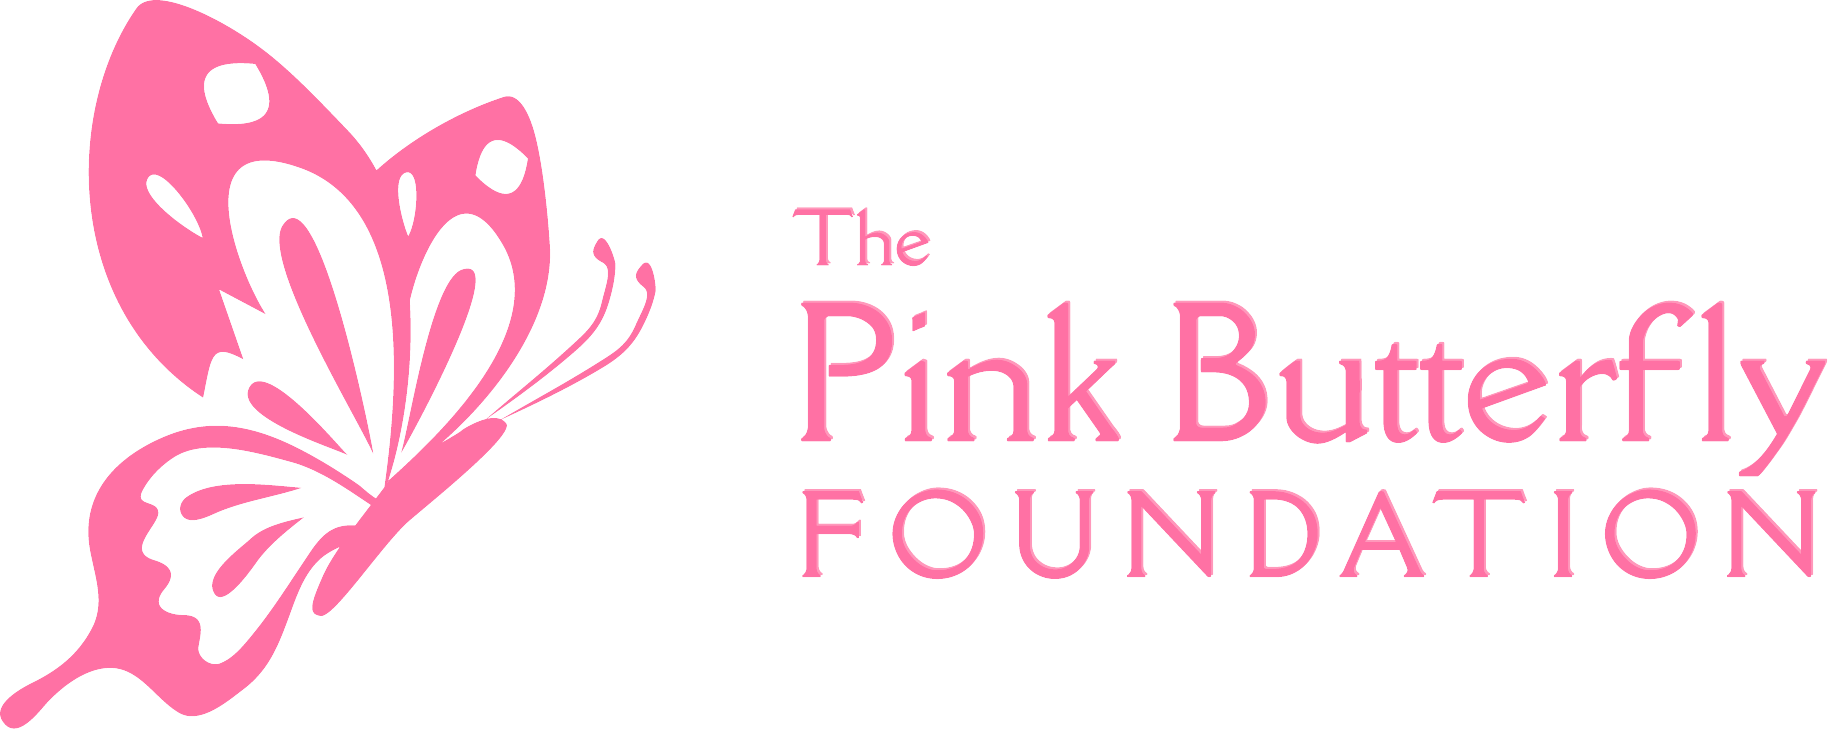 The Pink Butterfly Foundation